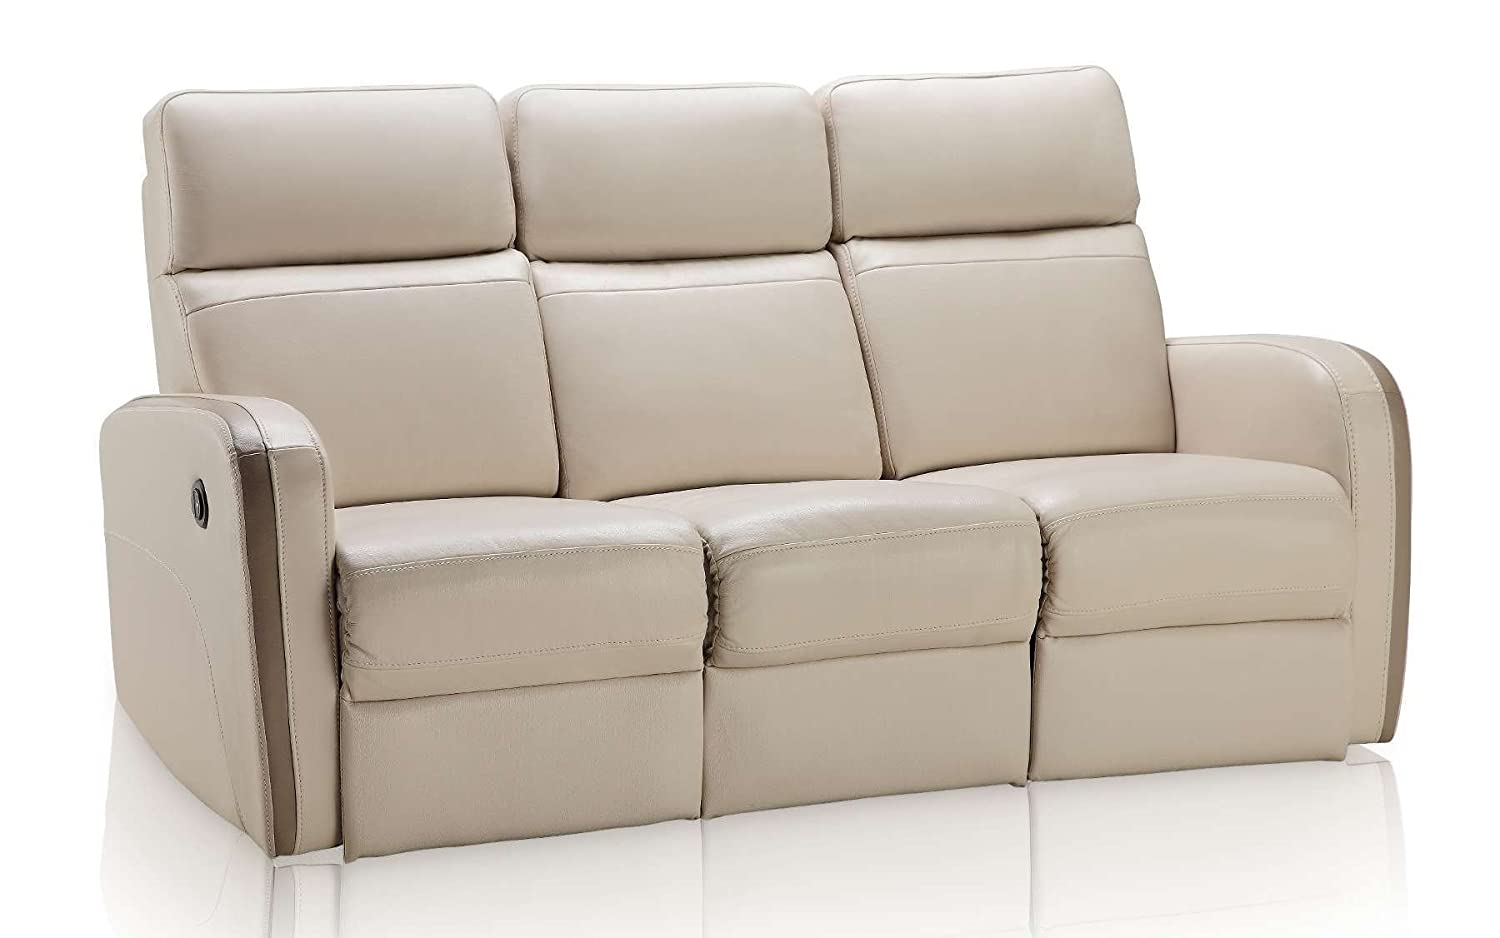 Creative Furniture Argentina Sofa with Power Recliners - Beige